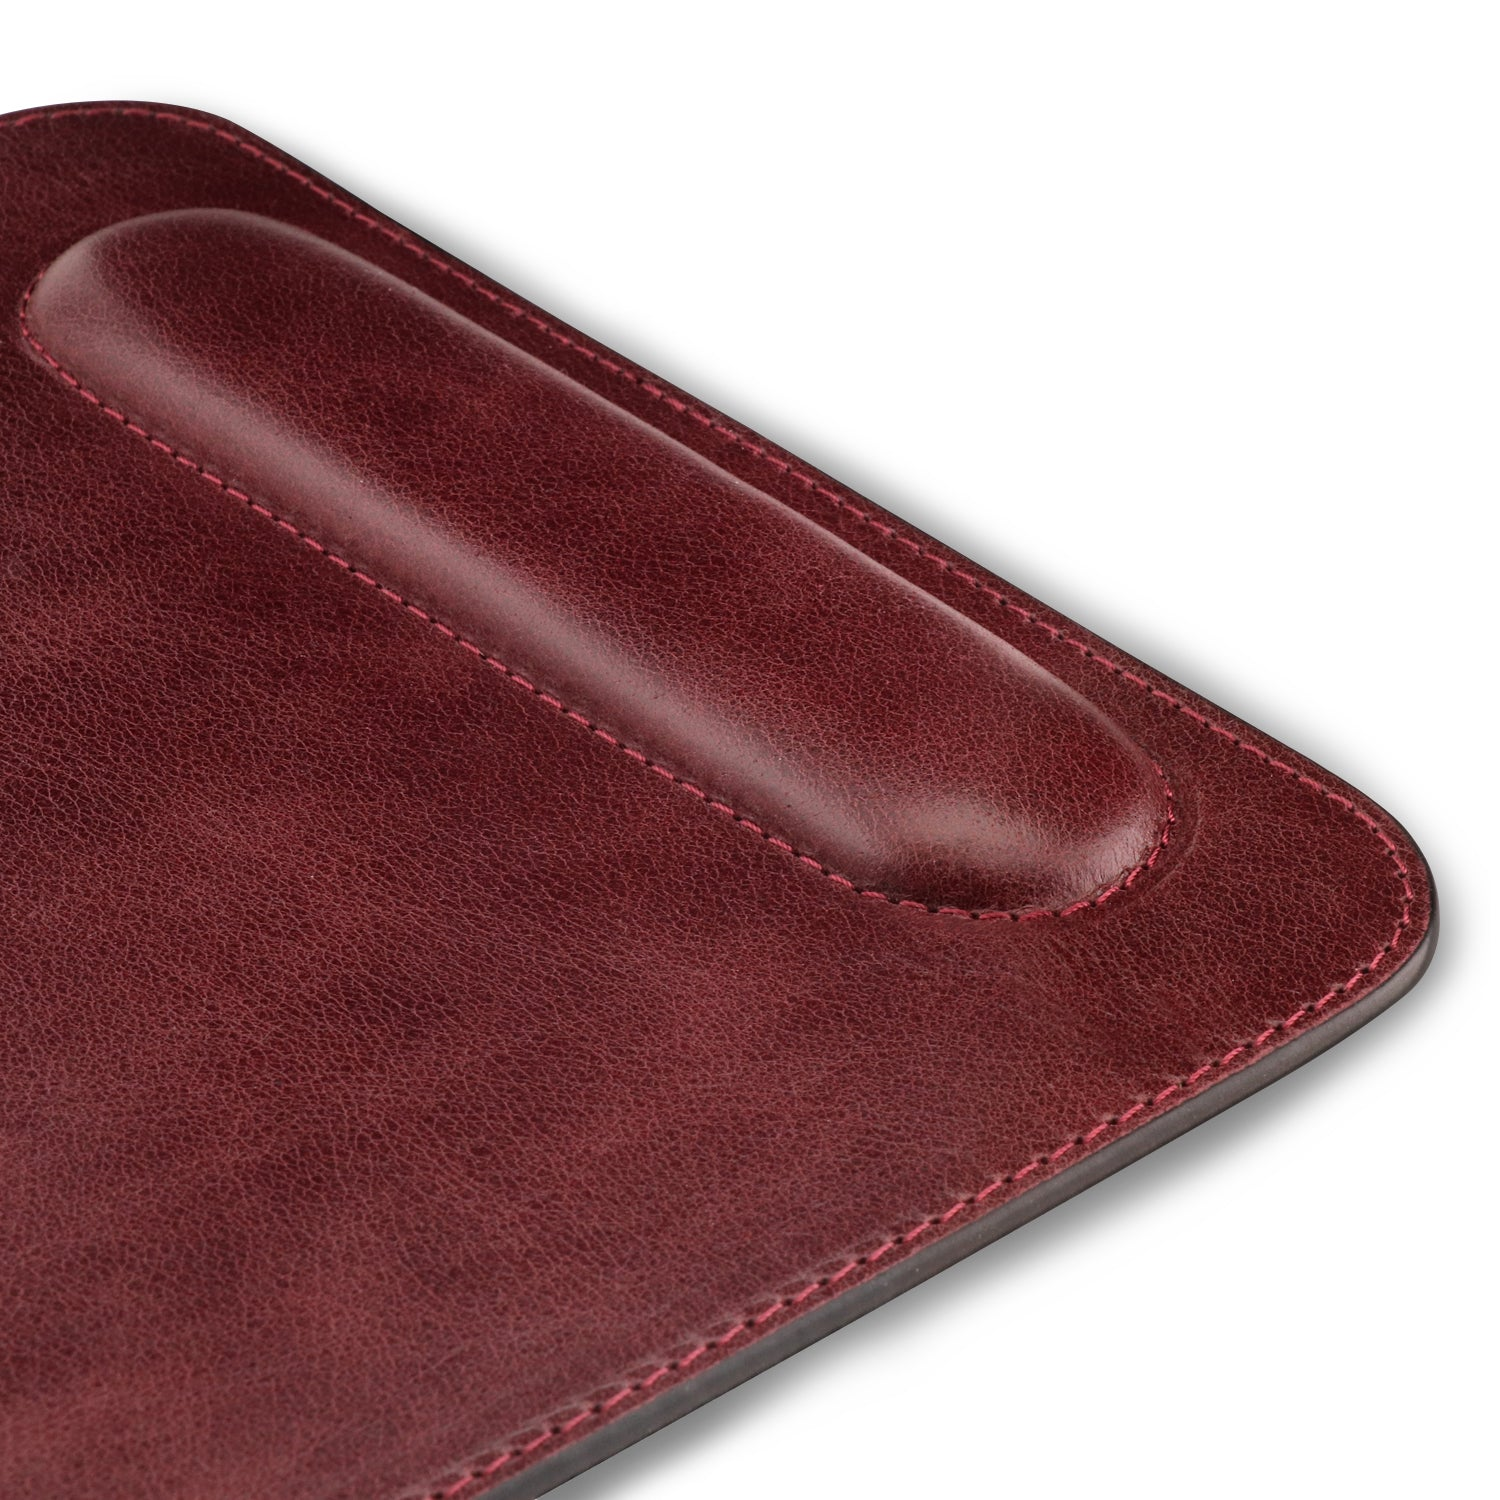 Brown Londo Genuine Leather Mouse pad with Wrist Rest